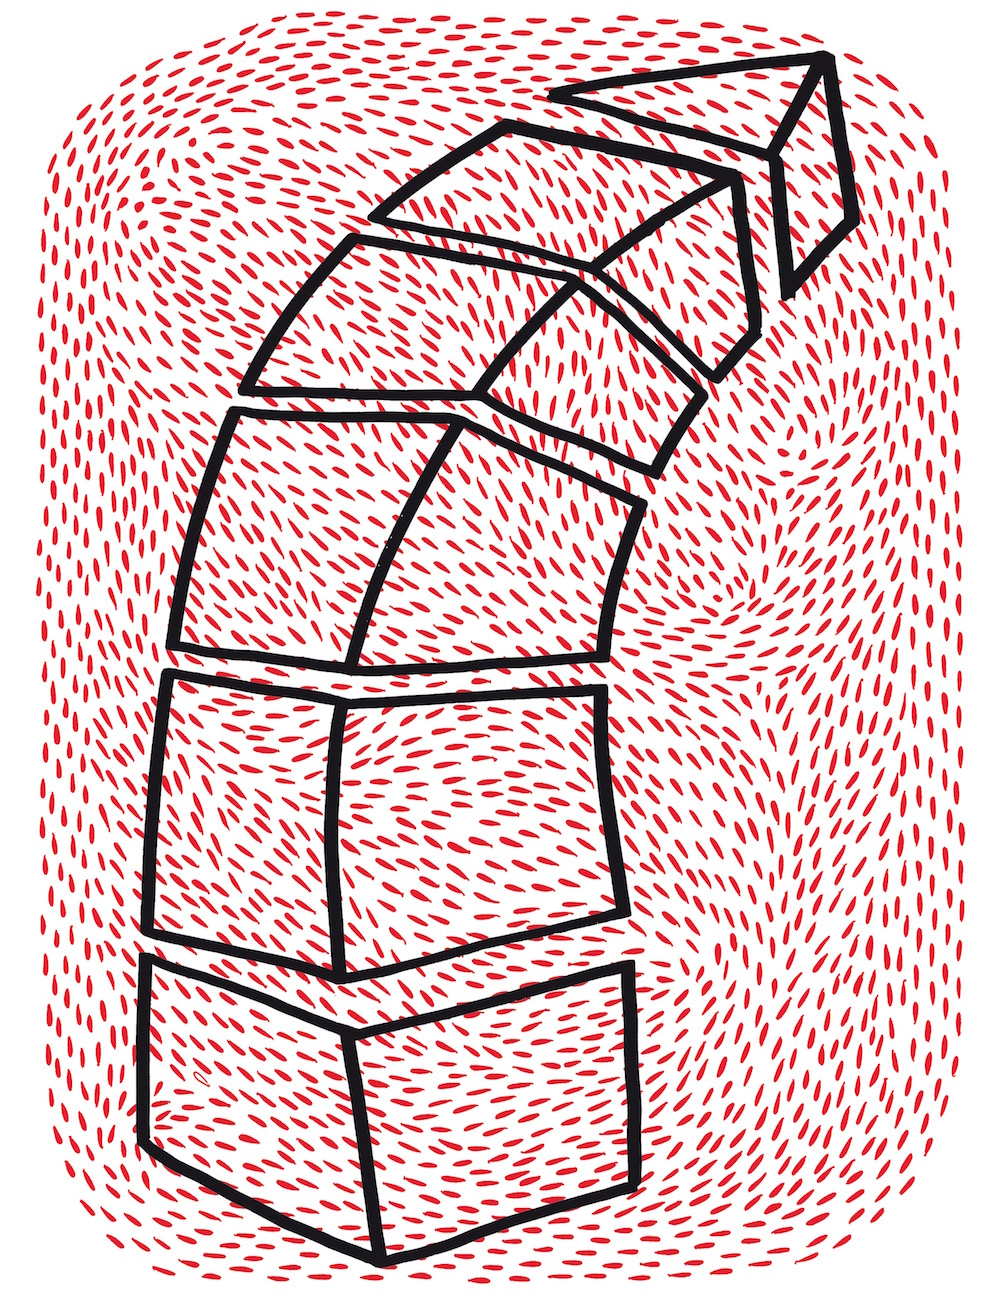 illustration, illustrations, illustrator, illustrators, stack, cubes, lean, leaning, strokes